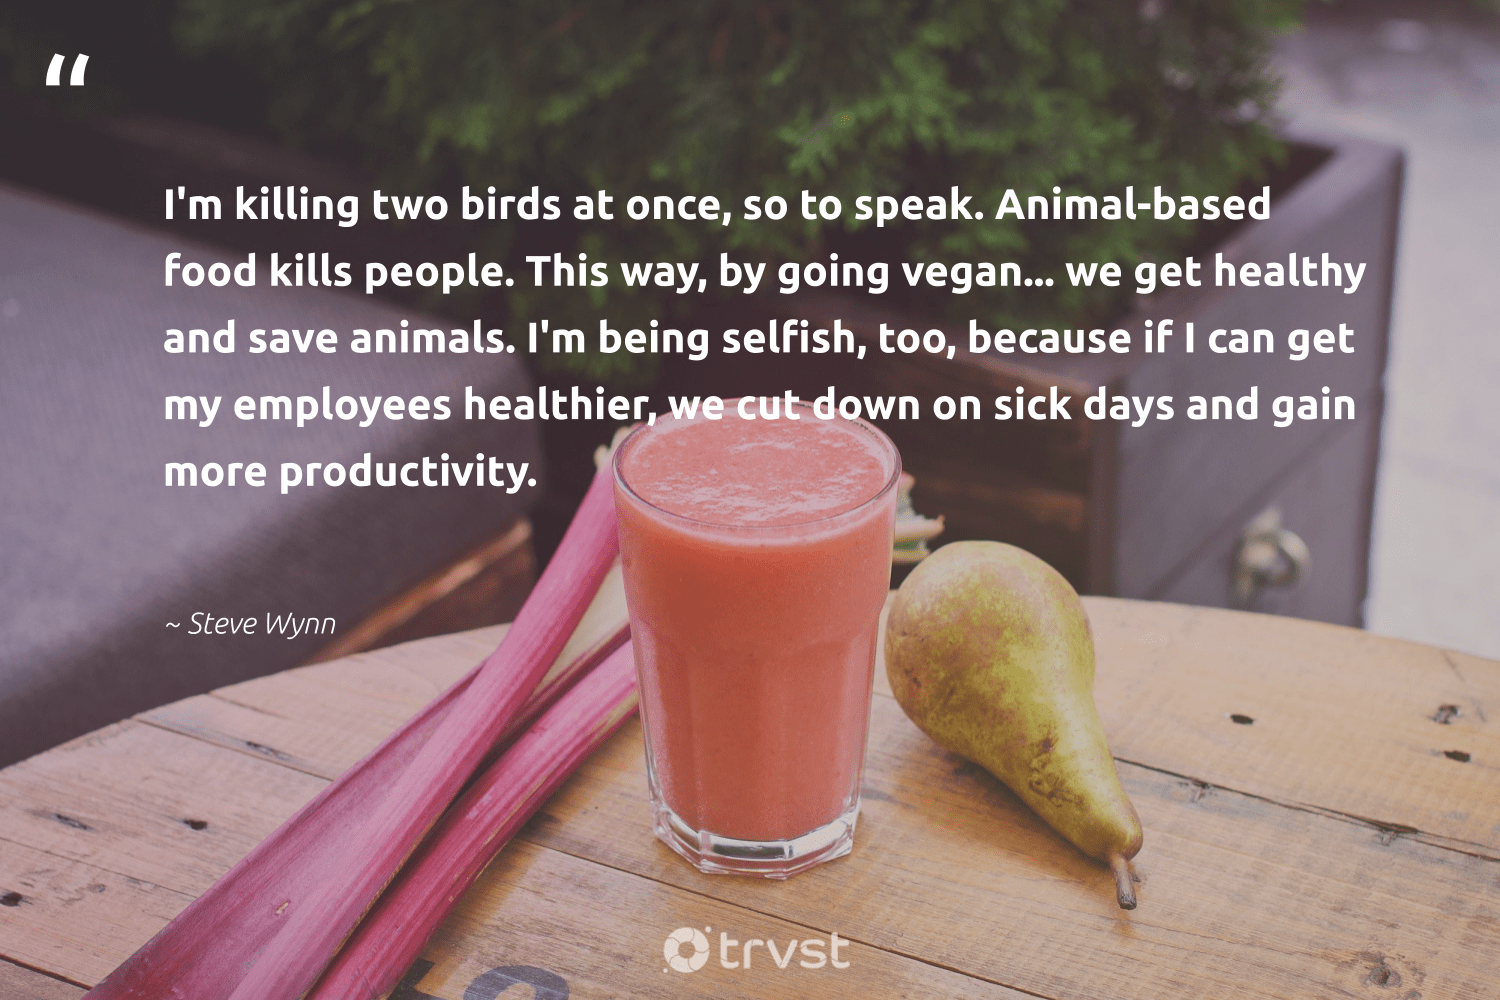 """I'm killing two birds at once, so to speak. Animal-based food kills people. This way, by going vegan... we get healthy and save animals. I'm being selfish, too, because if I can get my employees healthier, we cut down on sick days and gain more productivity.""  - Steve Wynn #trvst #quotes #birds #animals #animal #food #healthy #productivity #vegan #wildlife #animallovers #sustainable"